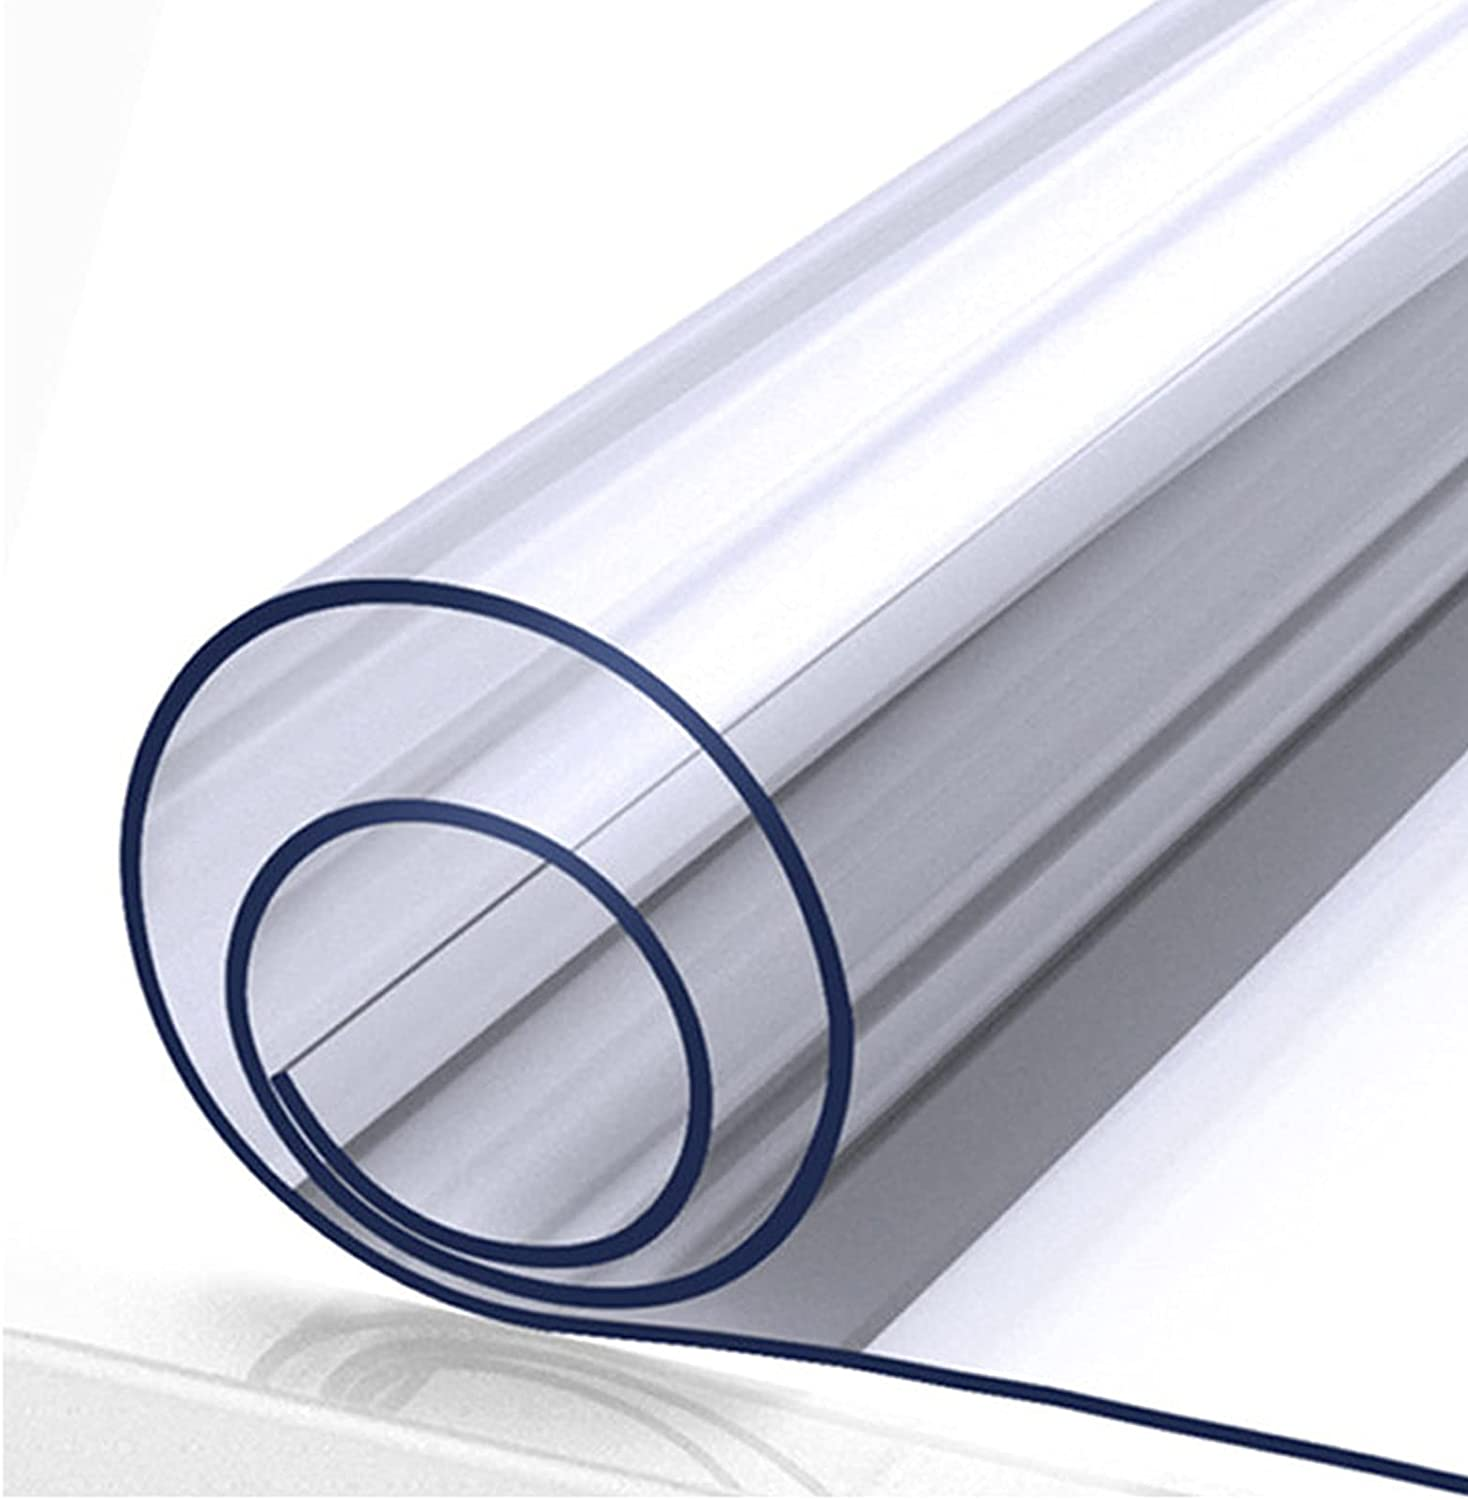 GXGX 1.5mm Thick Clear Plastic Tablecloth Cover Desk Free shipping New Spring new work one after another Rectangular